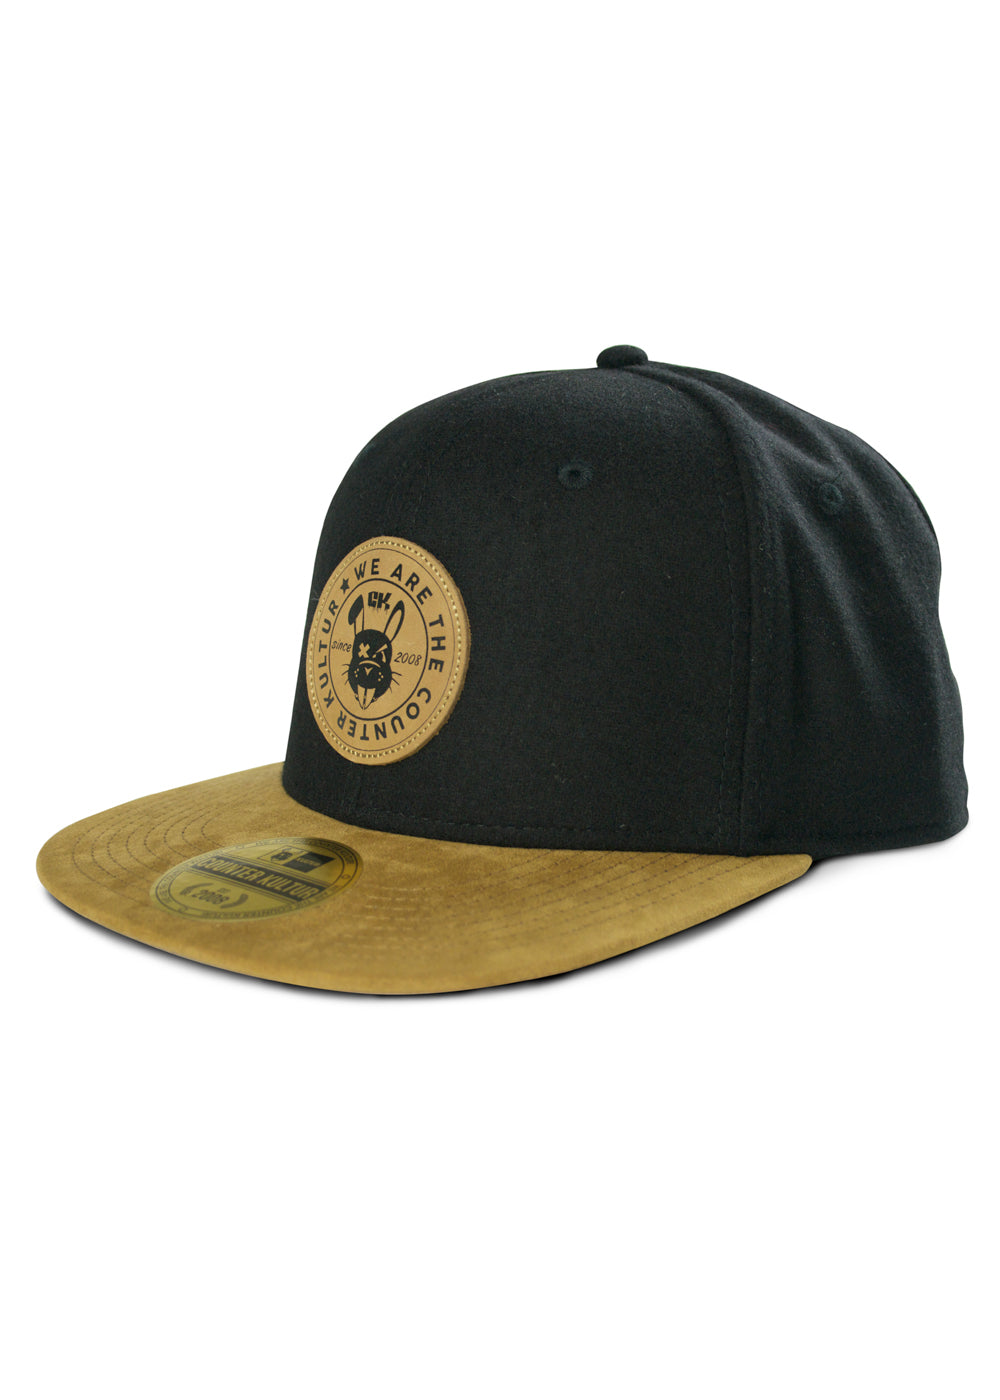 e21ebfe7b7a CK Leather Rabbit Patch Hat - Black Wool. Product image 1 ...